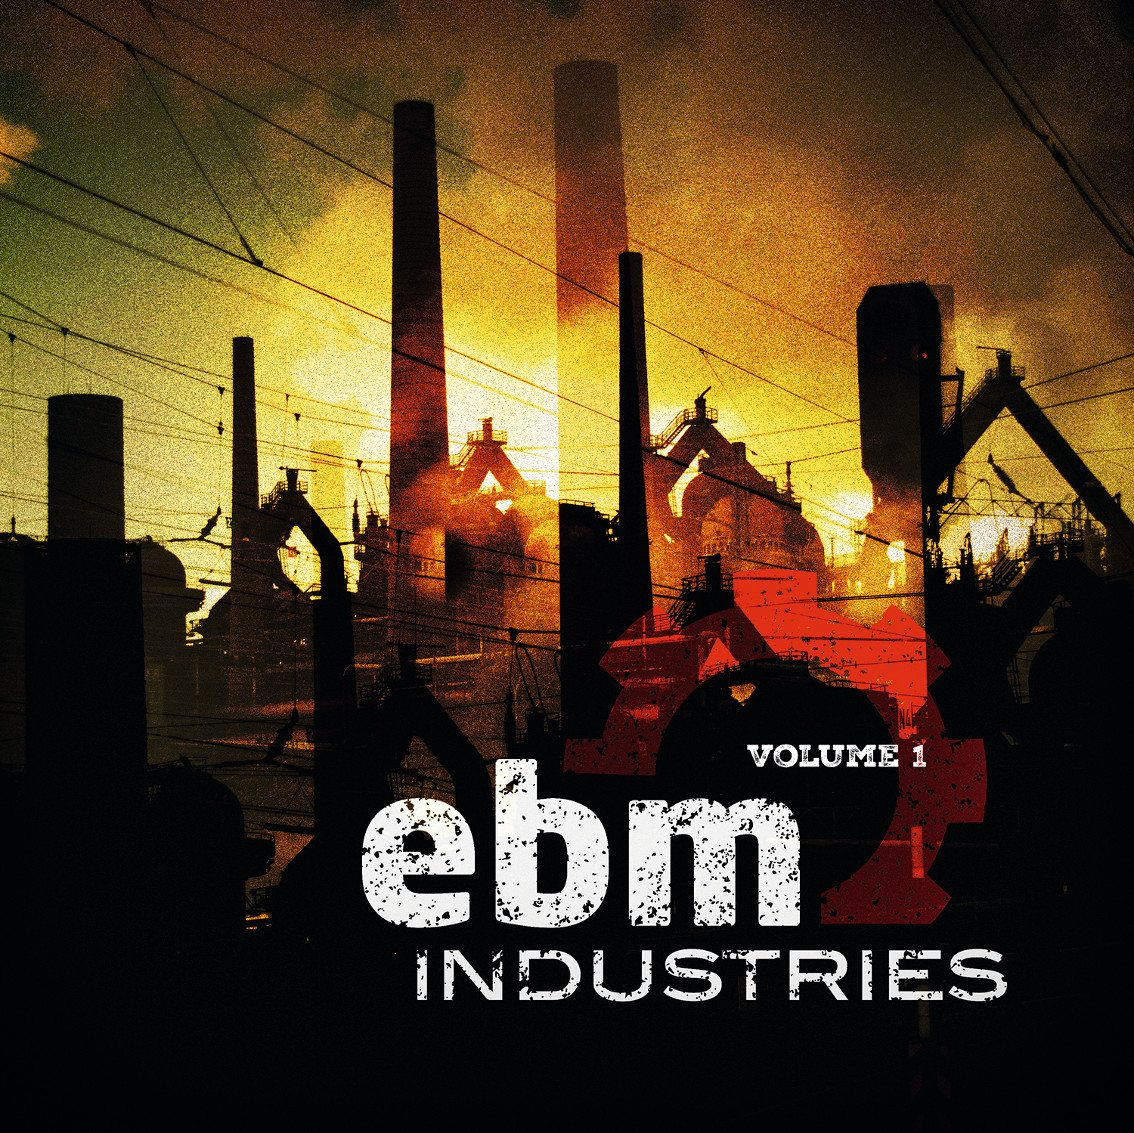 emmobiz Records to release brand new compilation'EBM Industries Vol. 1' - check the different formats + live event